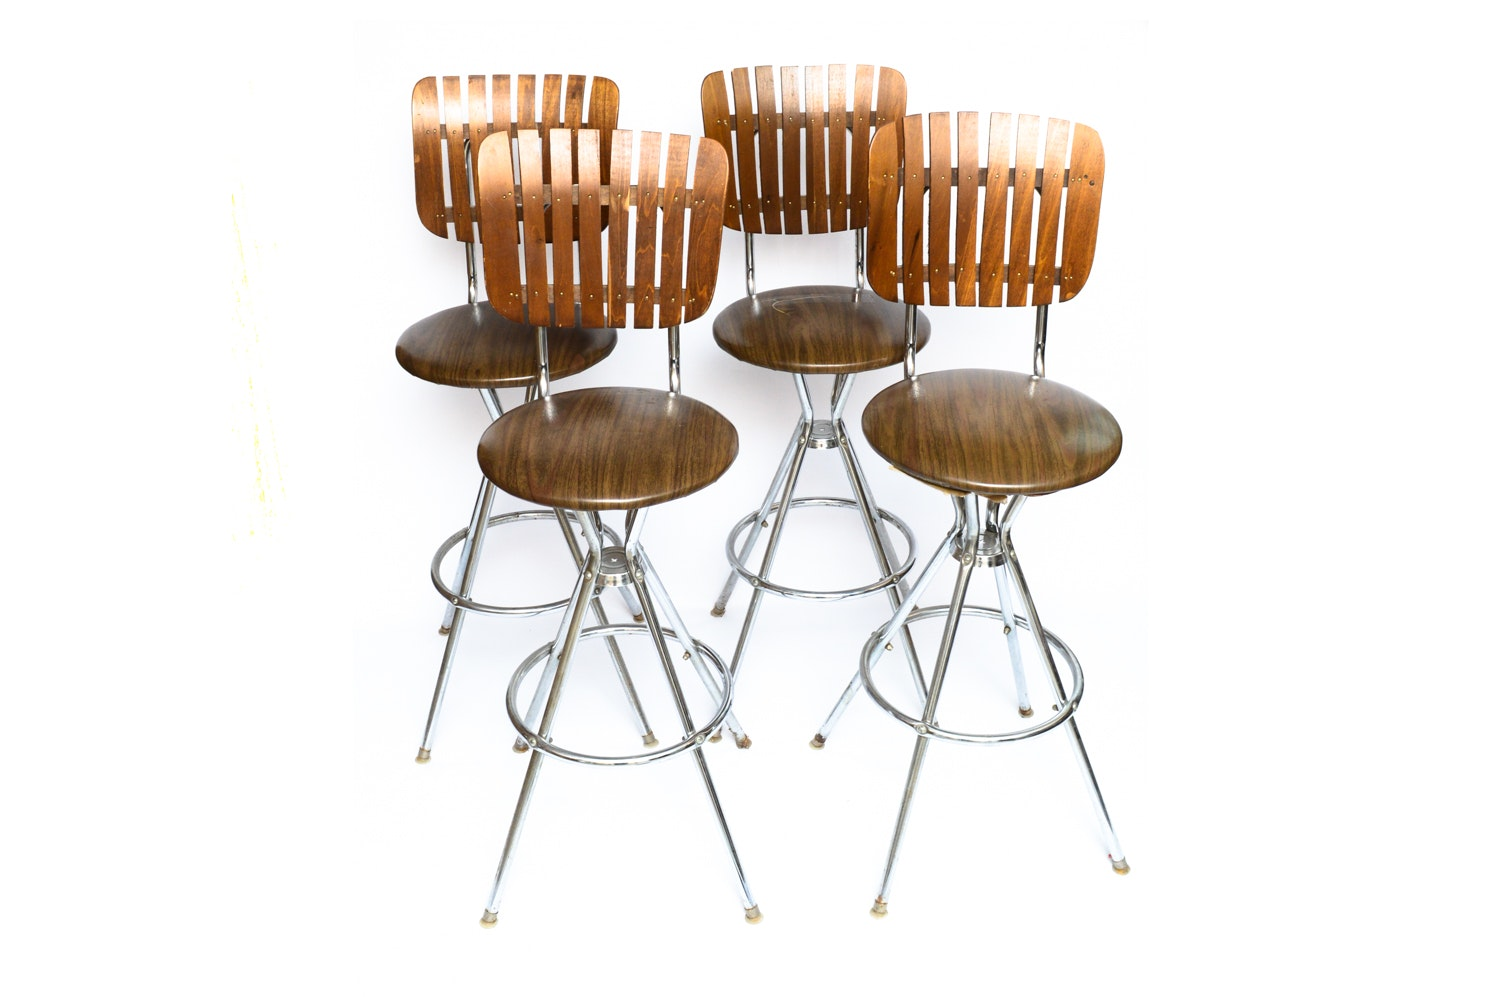 Four Mid Century Modern Bar Stools after Arthur Umanoff